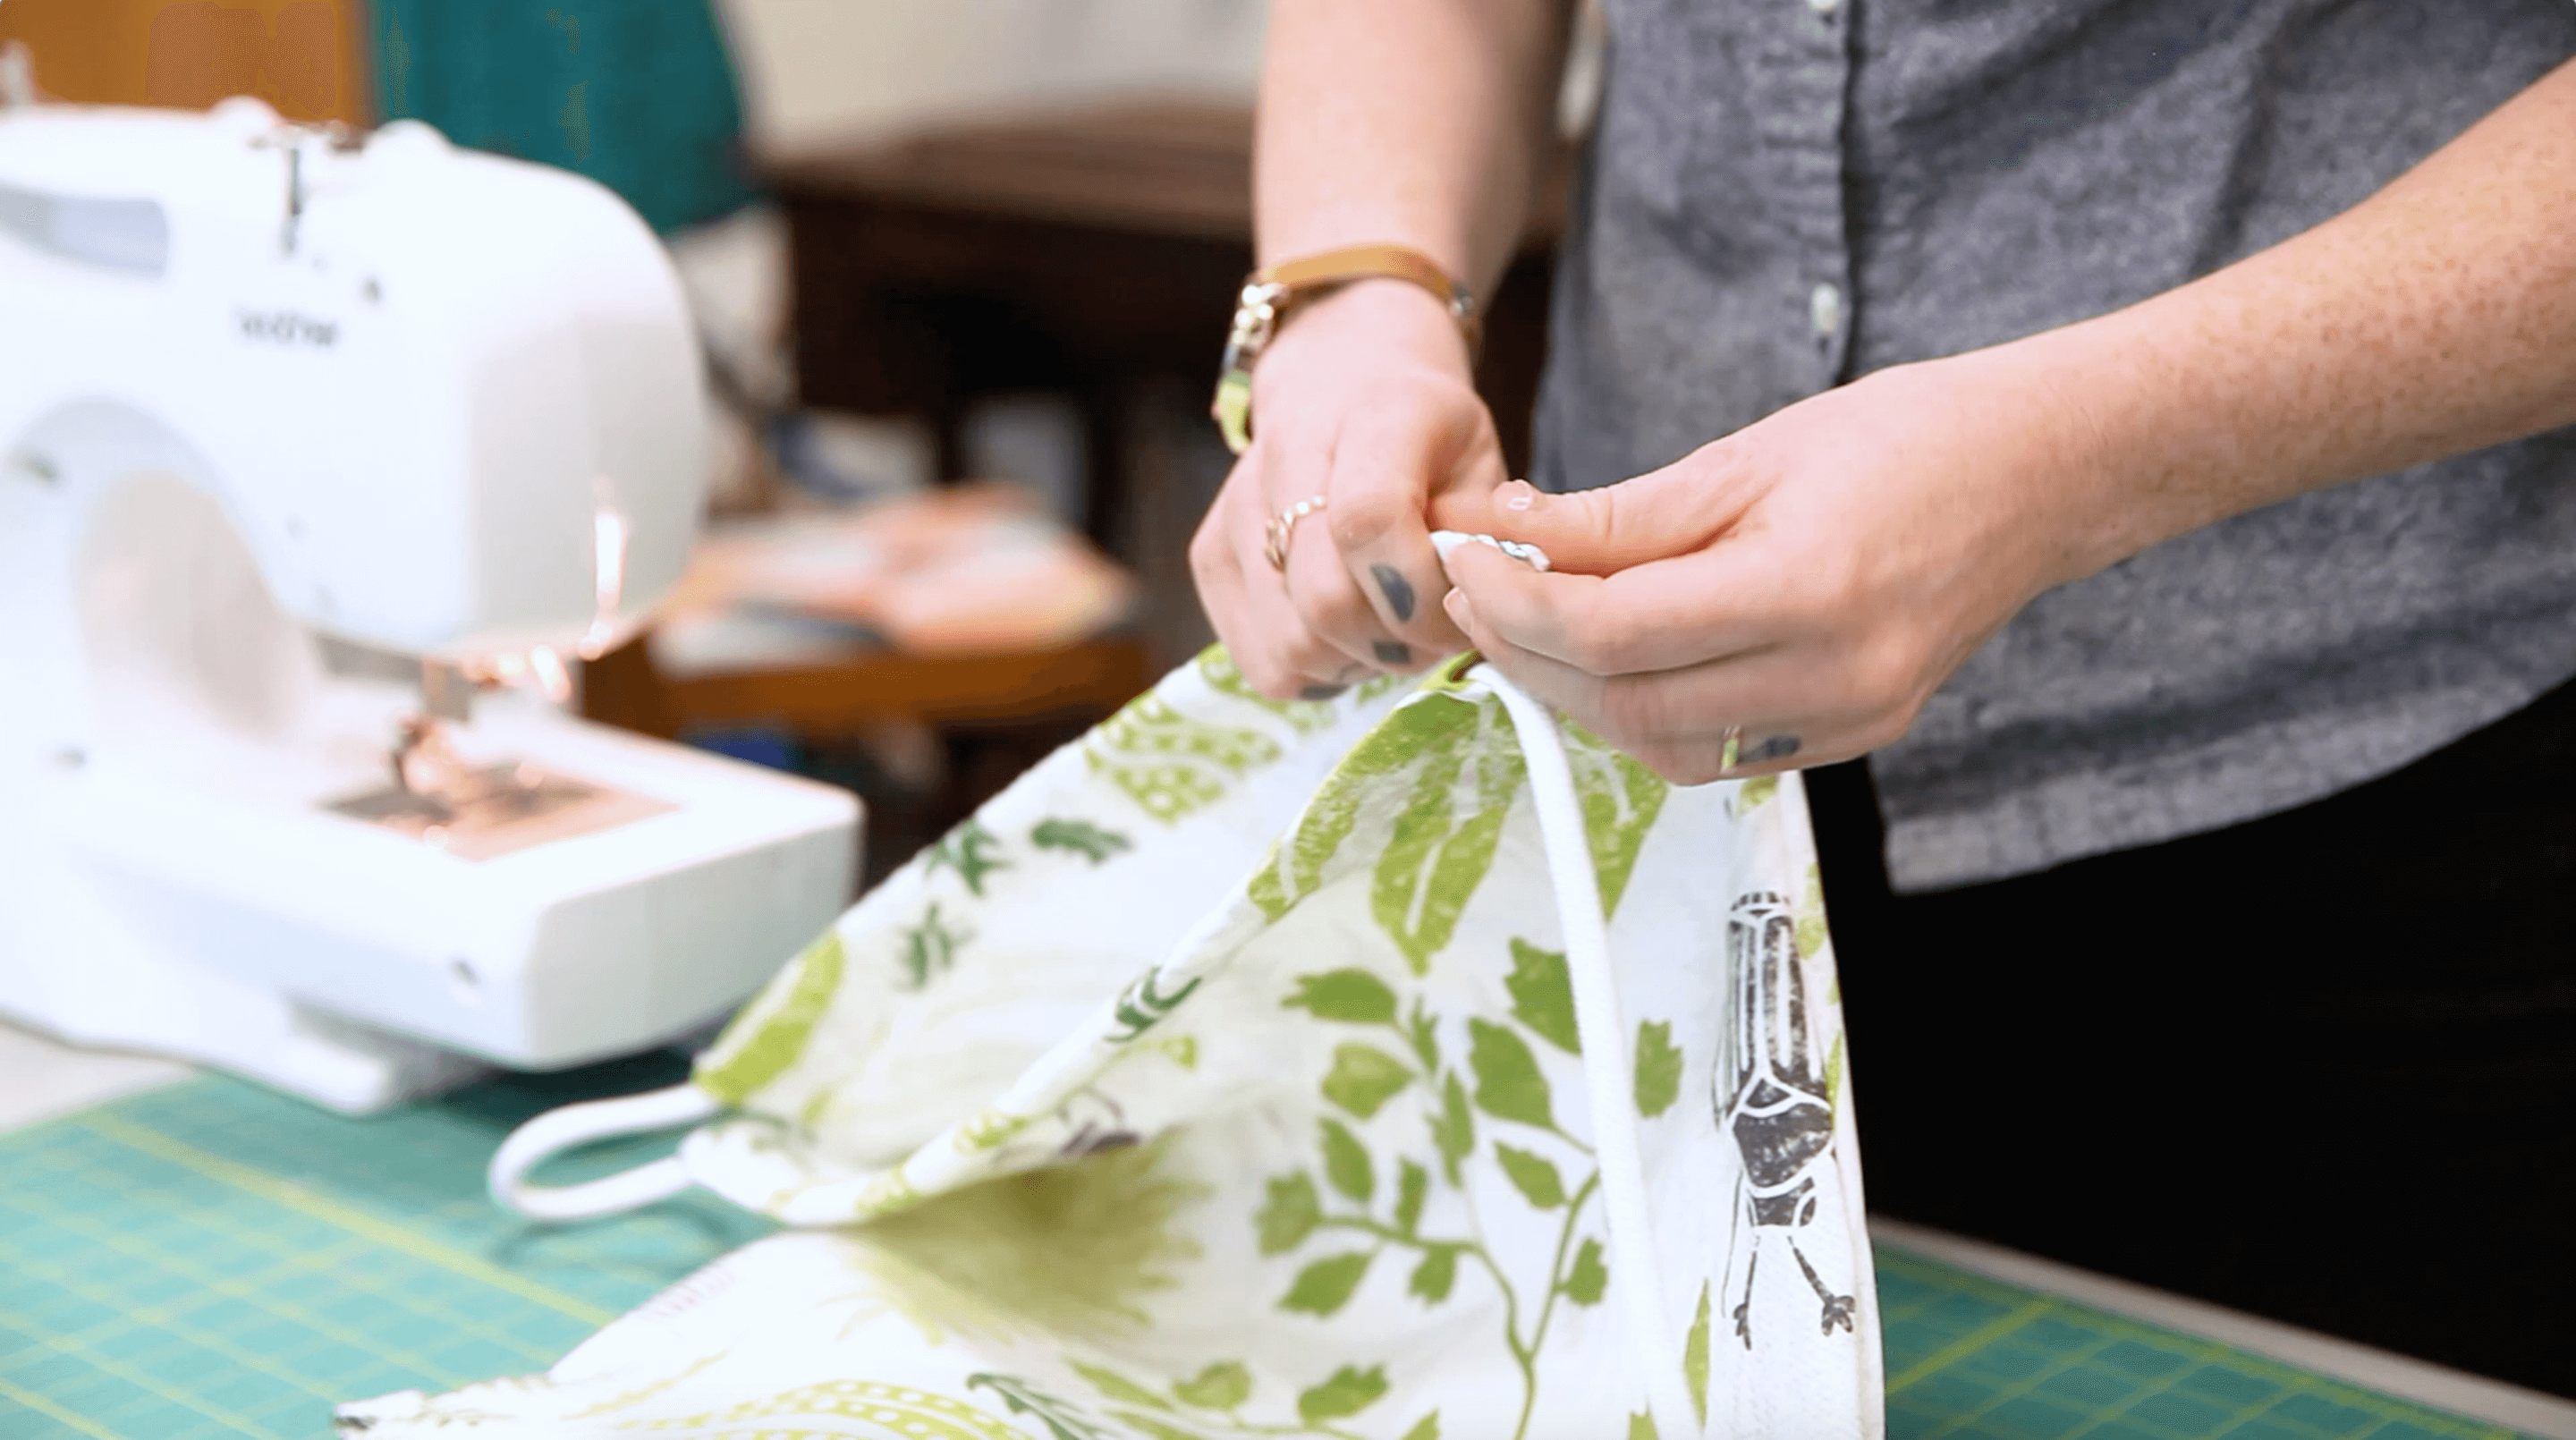 DIY Drawstring Backpack - insert the drawstring | Spoonflower Blog